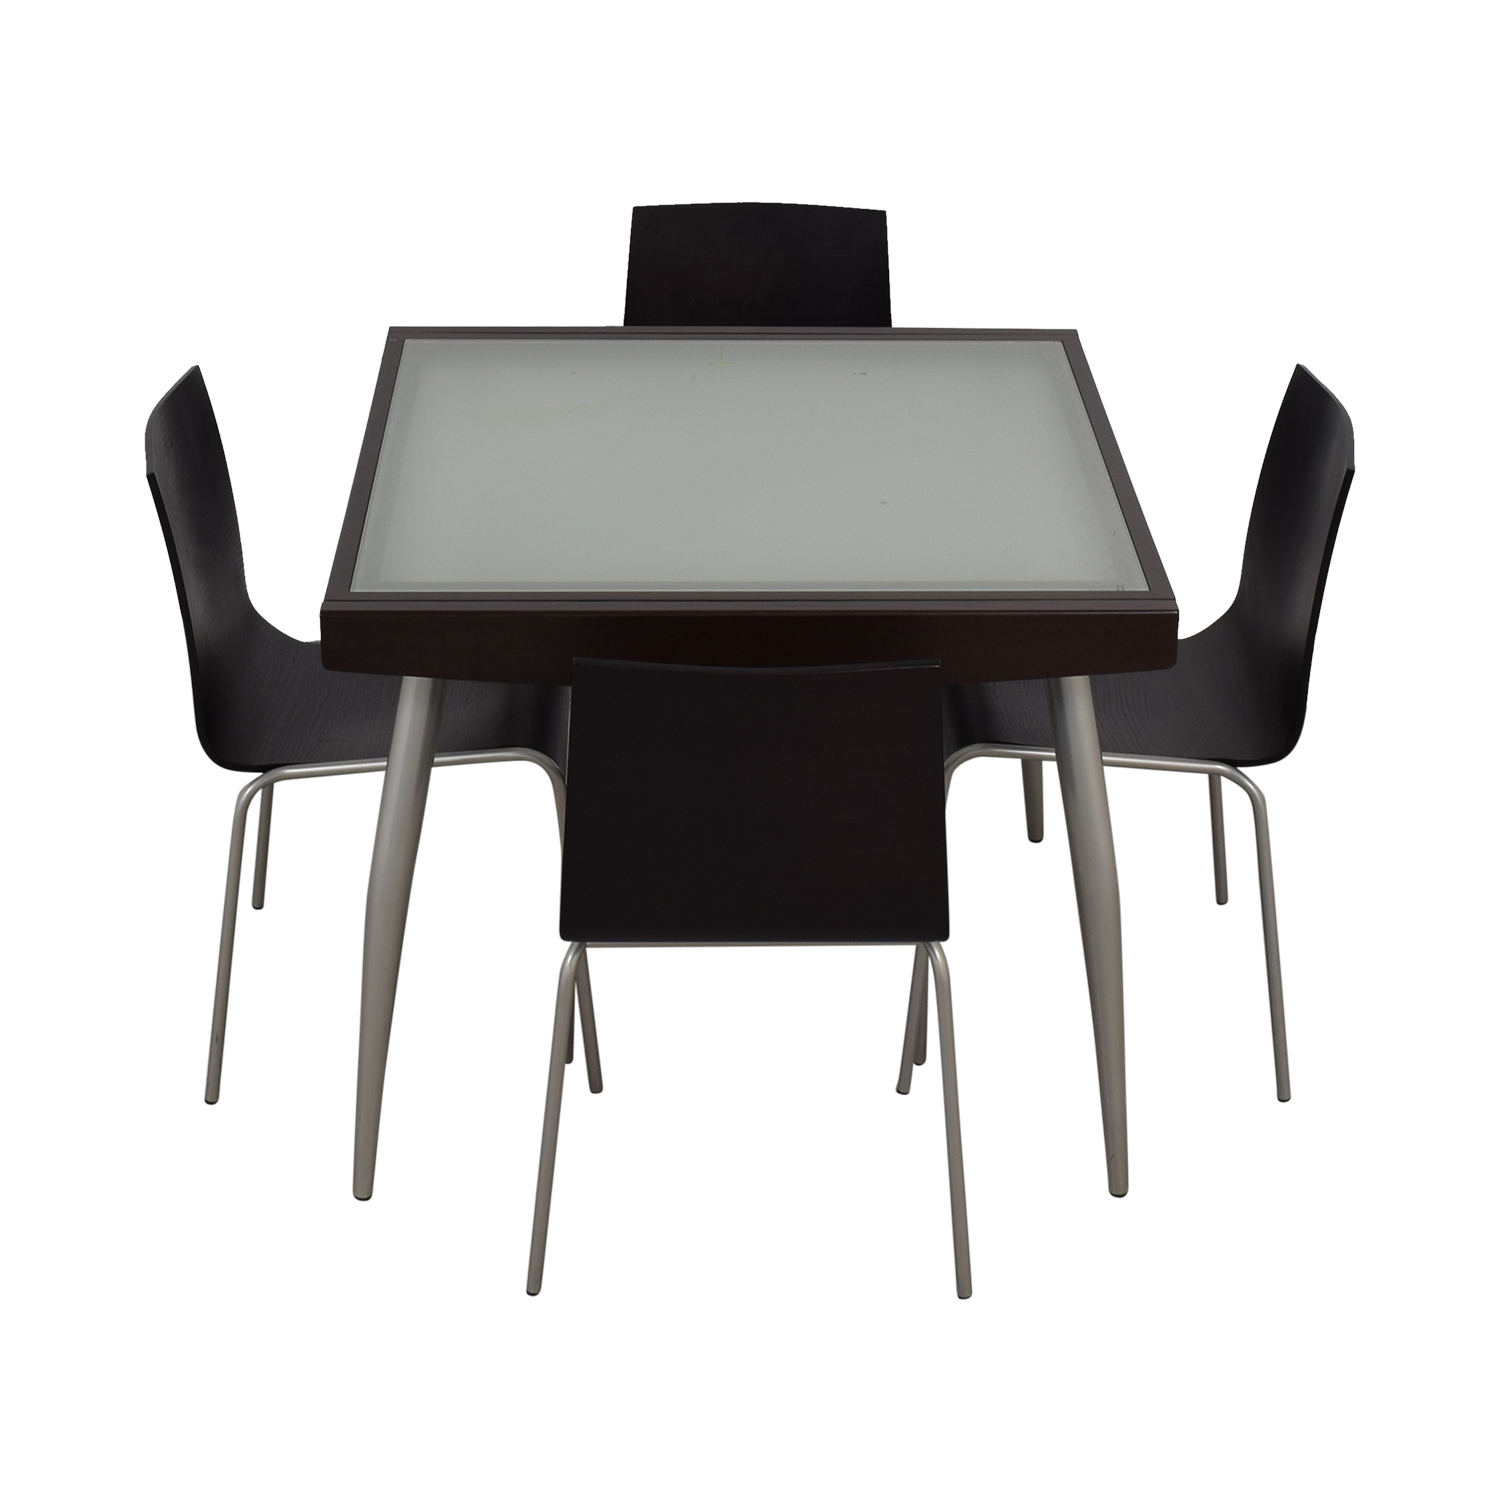 Calligaris Calligaris Extendable Glass and Wood Dining Set used